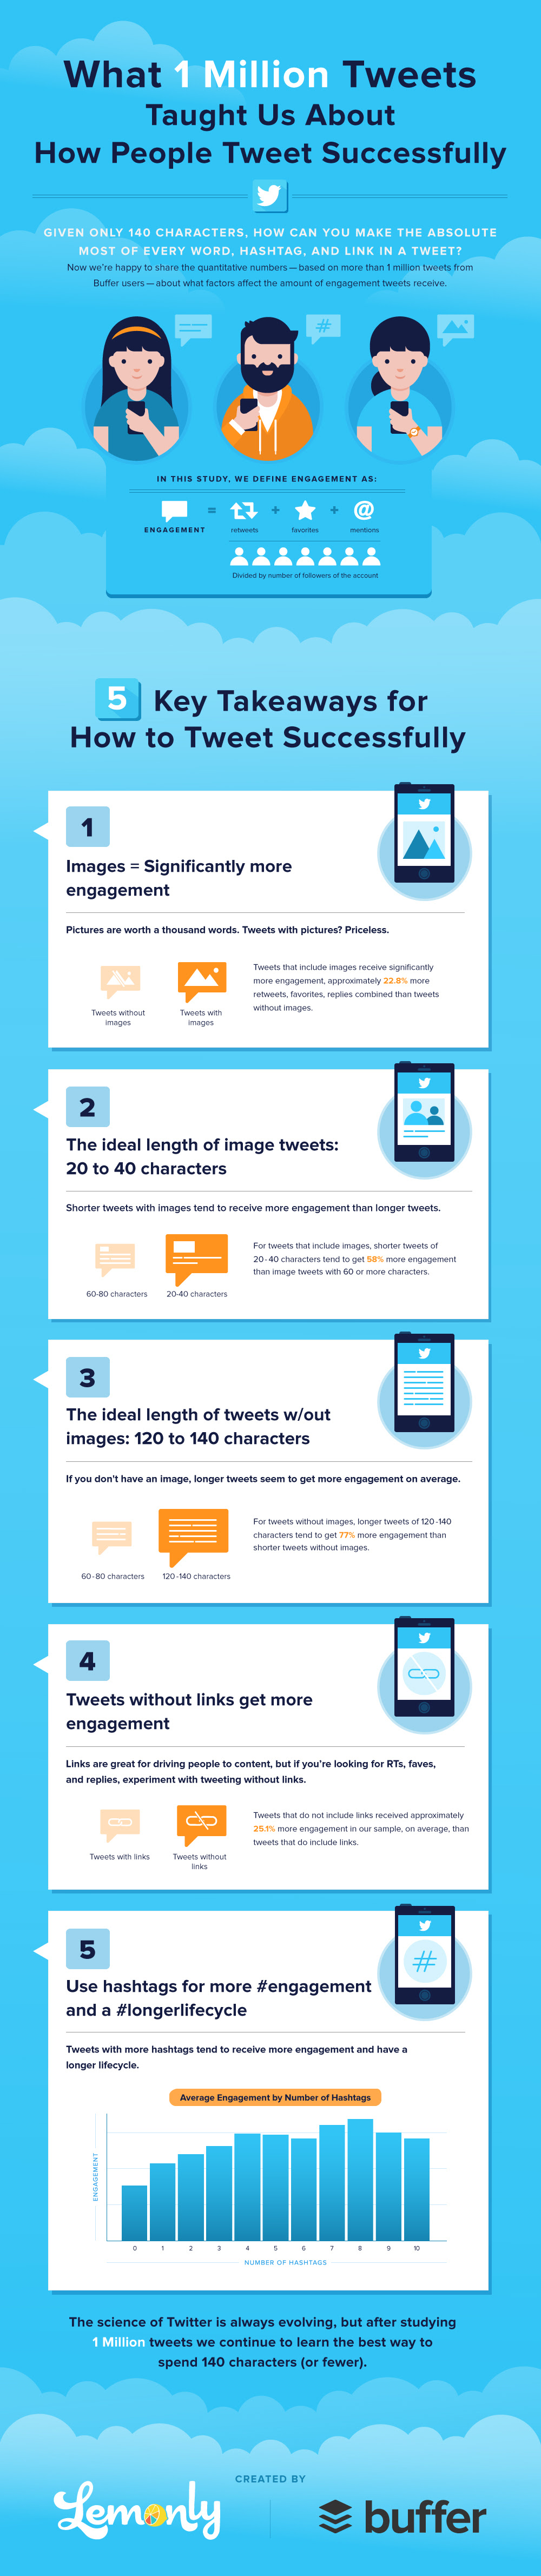 #socialmedia Tips: What 1M Tweets Tell You About How People Tweet Successfully - #infographic